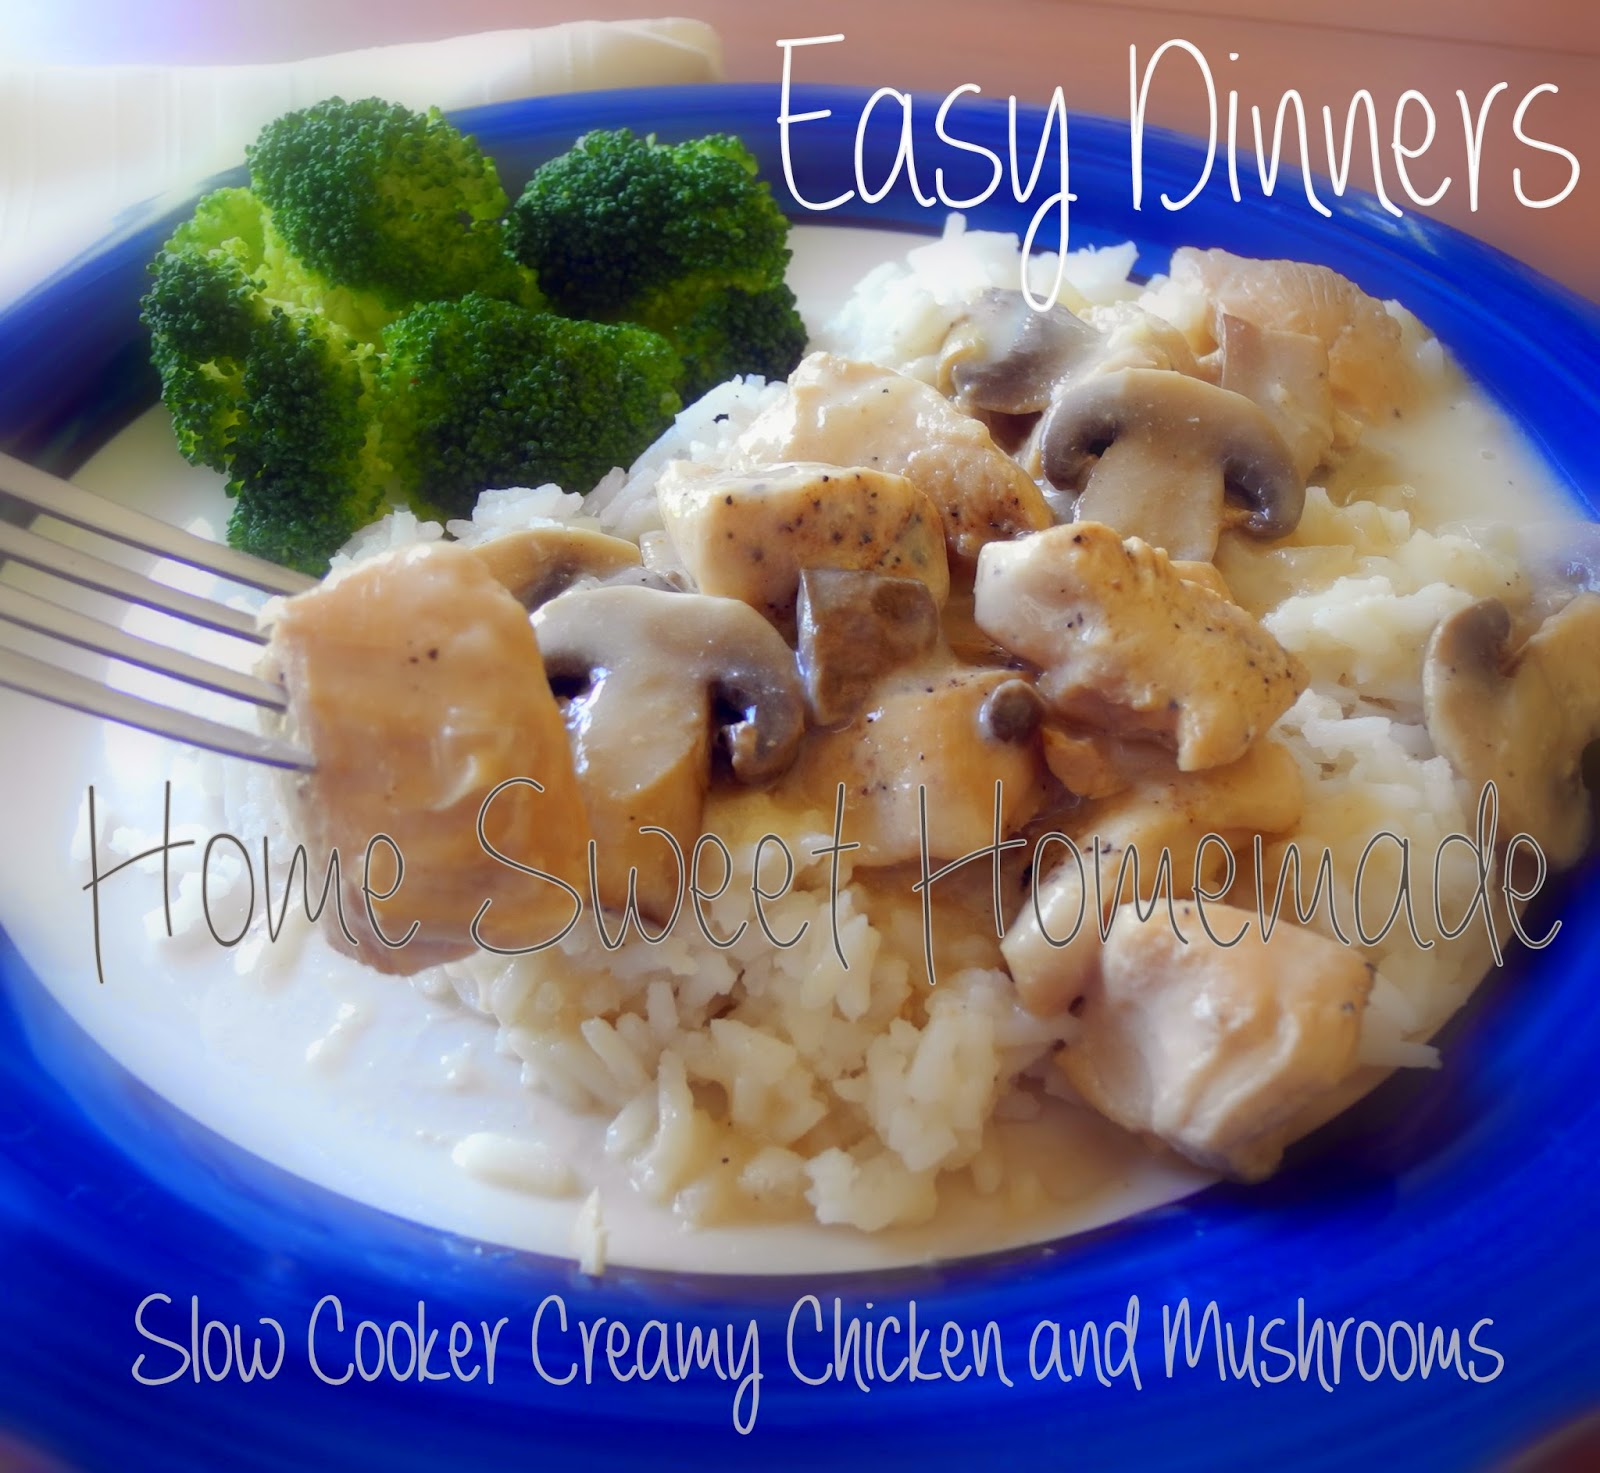 Slow Cooker Creamy Chicken and Mushrooms